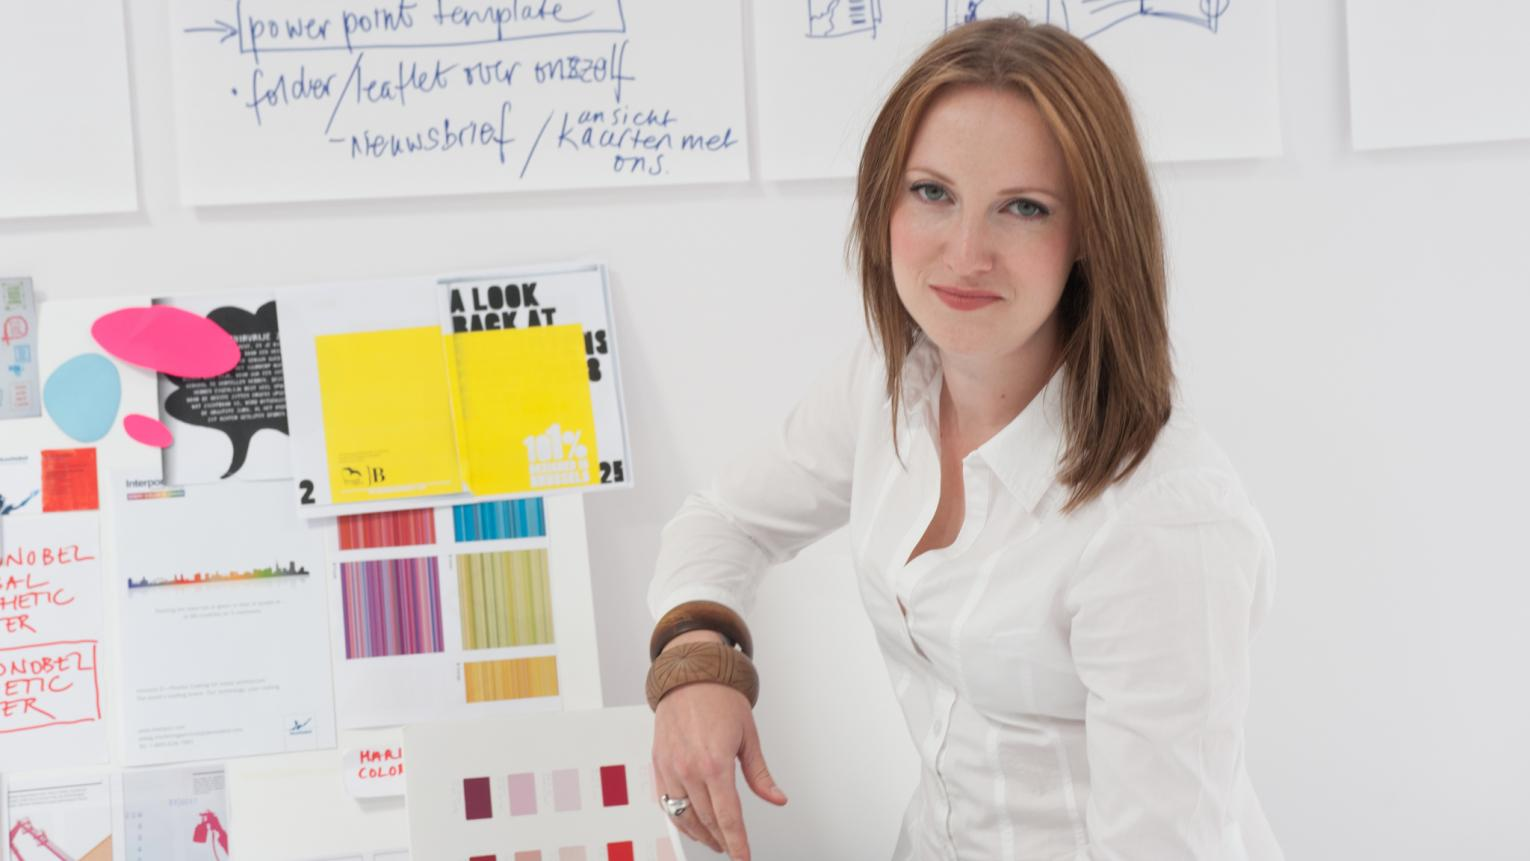 Louise has a God gifted skill of identifying trends that make her instrumental in forecasting colour trends each year.